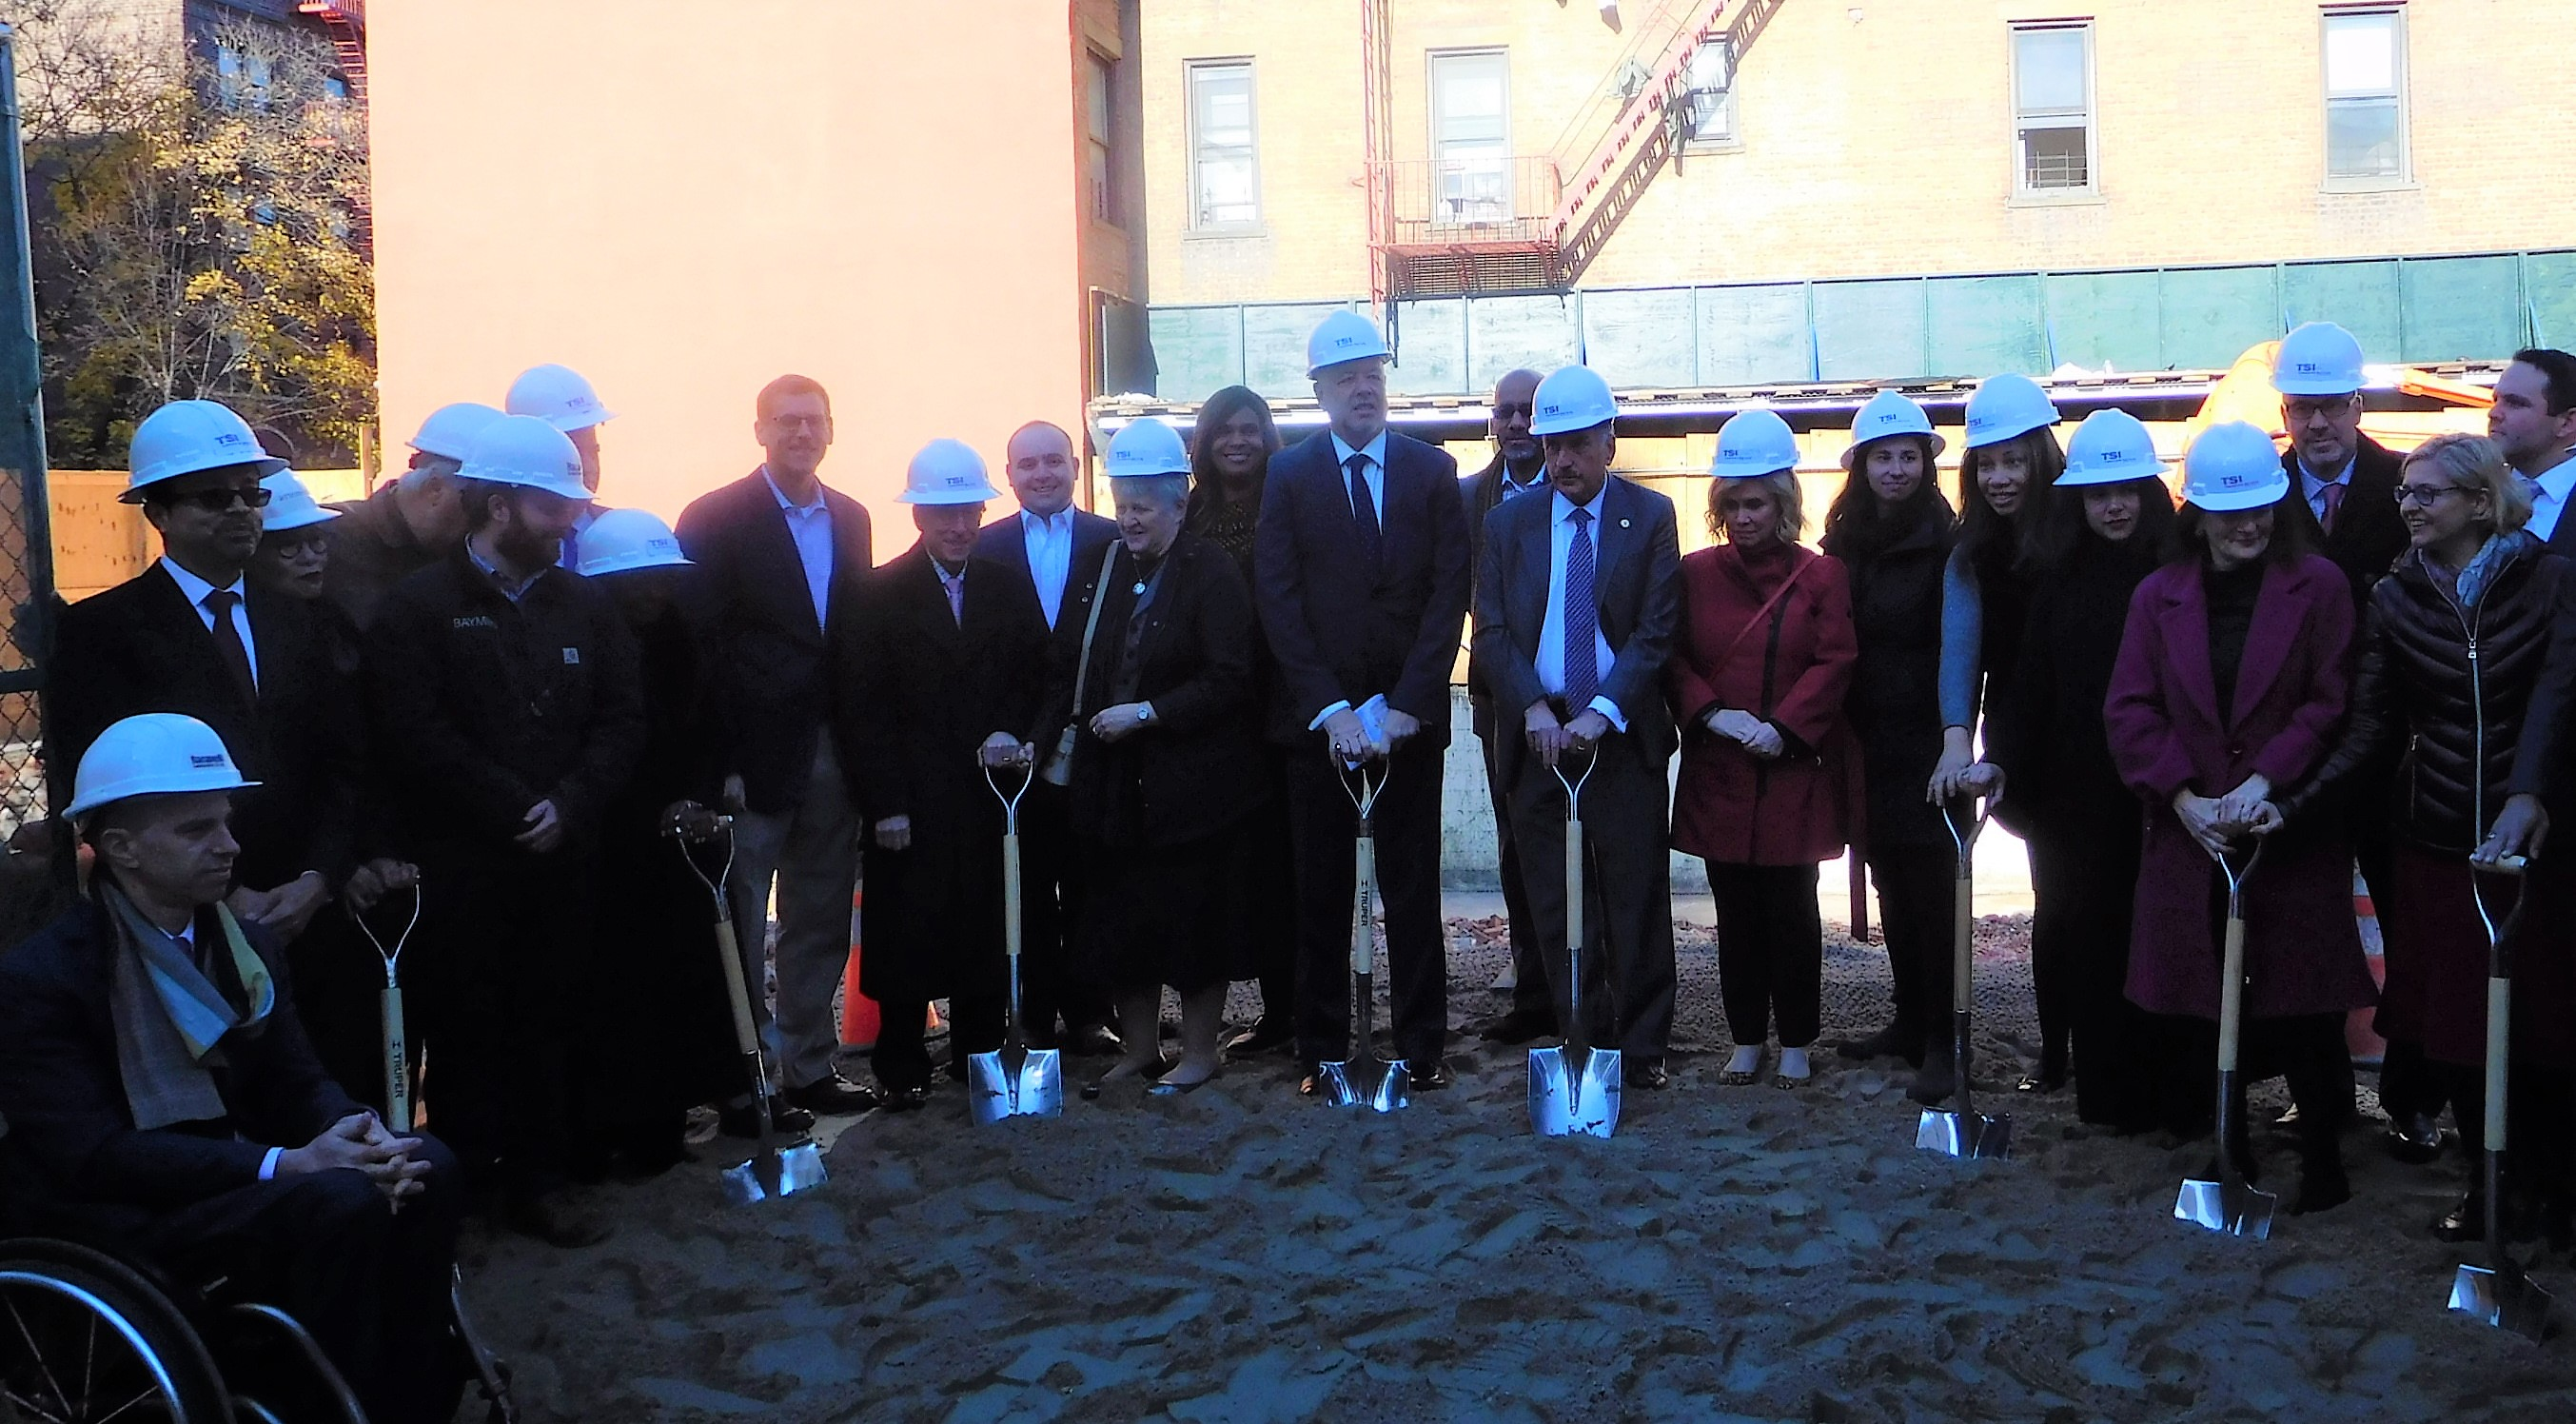 On November 26, 2019, Assemblyman Braunstein attended the Groundbreaking Ceremony for Transitional Services for New York's new 70-unit apartment building in Jamaica.